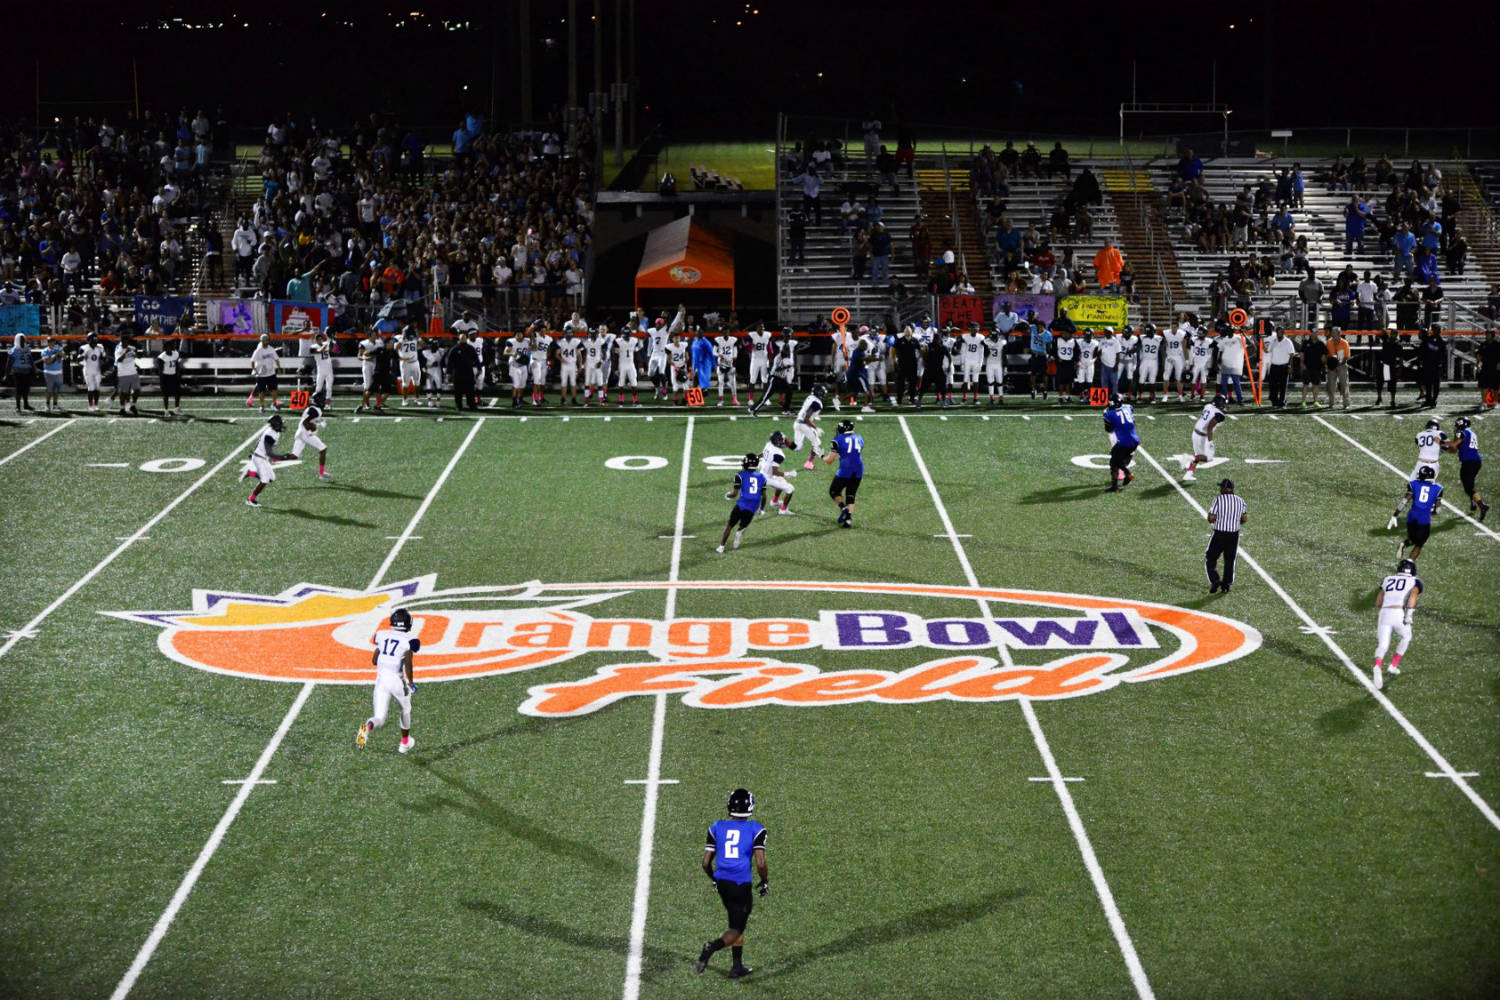 The Orange Bowl Field at Harris Field Park is the Orange Bowl's fourth Legacy Gift to the South Florida community. WSDG was reached by Groovyland Corp to design the sound system design and systems integration for the field's rejuvenation. Opening game at night.